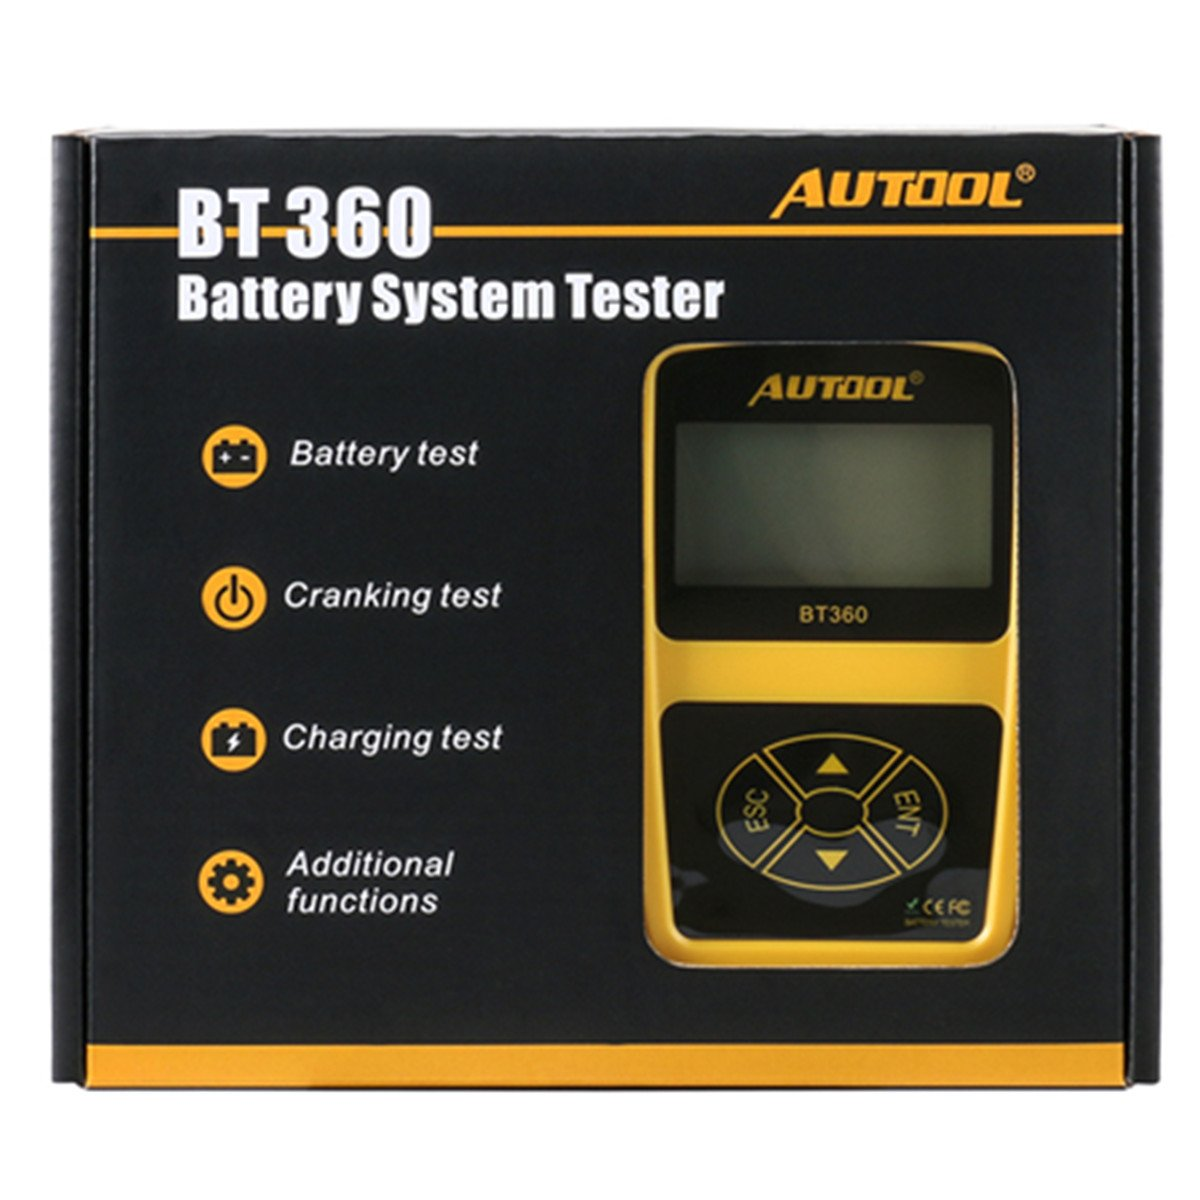 Car 12V Battery Tester Analyzer Autool BT360 CCA 100-2400 for Regular Flooded,Auto Cranking and Charging System Diagnostic Analyzer for Domestic Cars